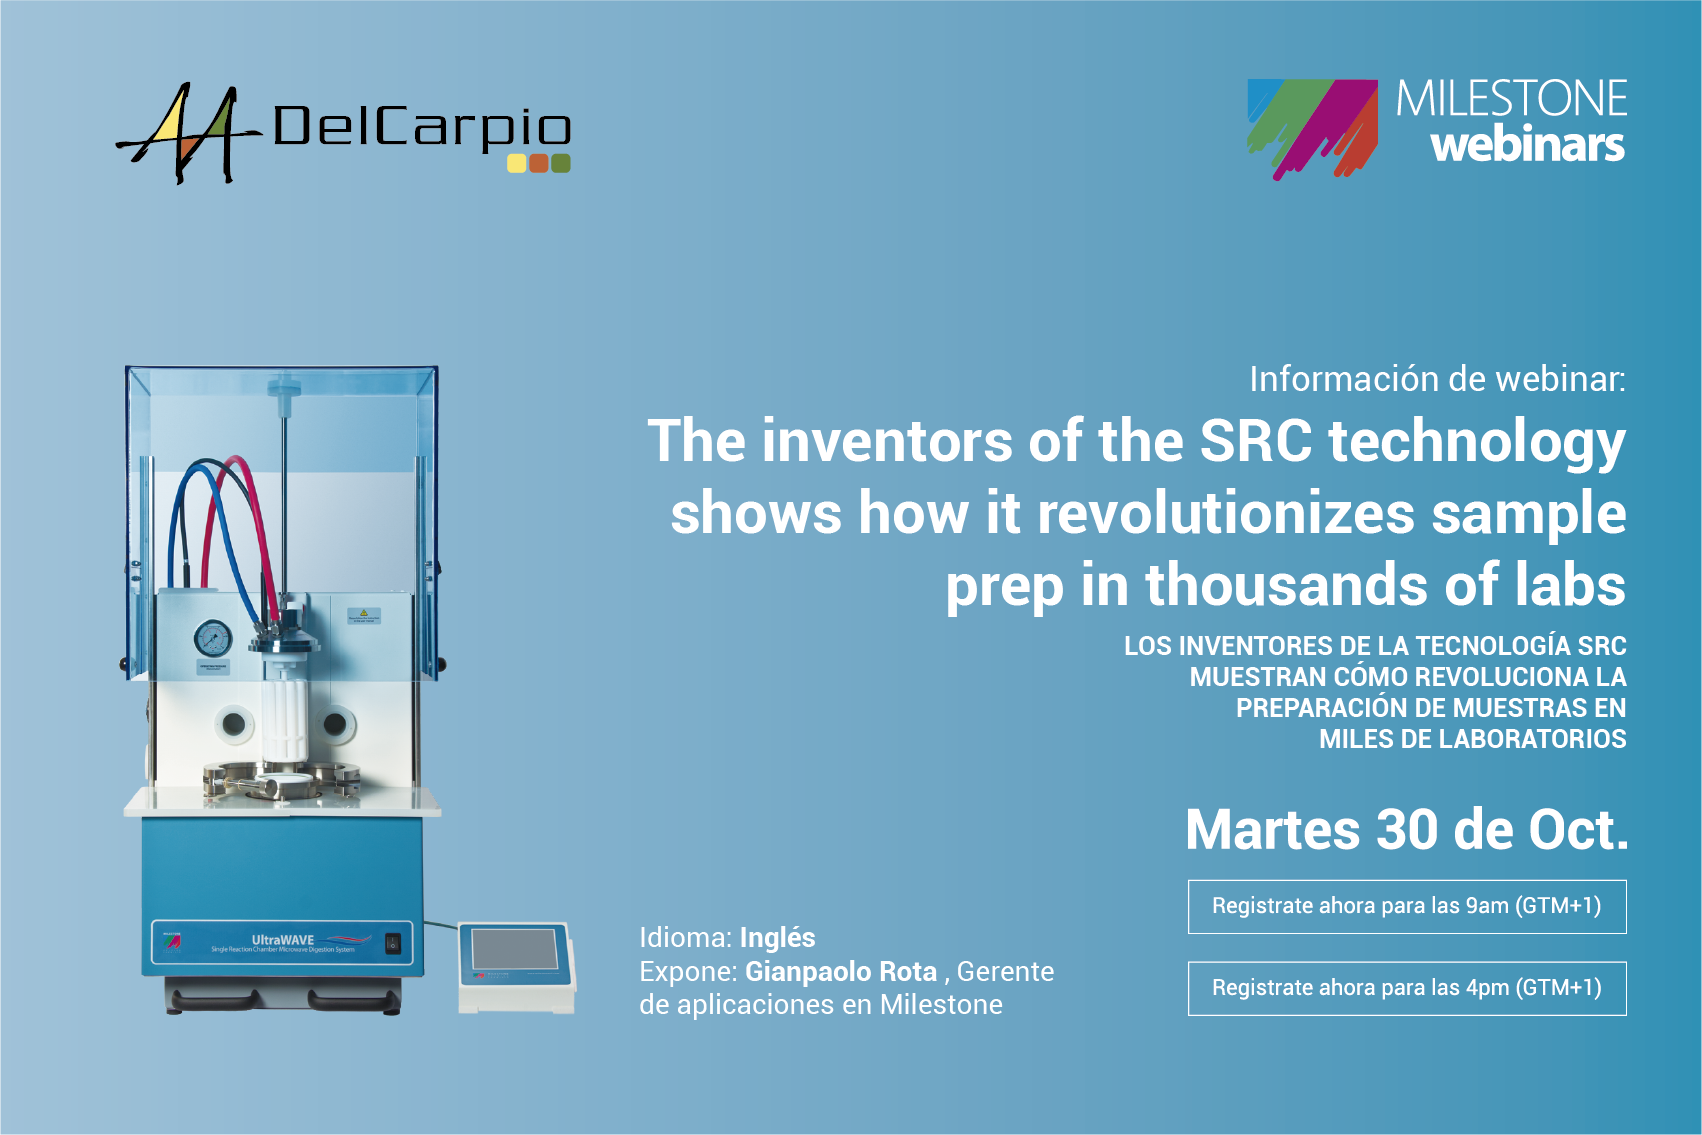 WEBINAR 30 Octubre – The inventors of the SRC technology shows how it revolutionizes sample prep in thousands of labs